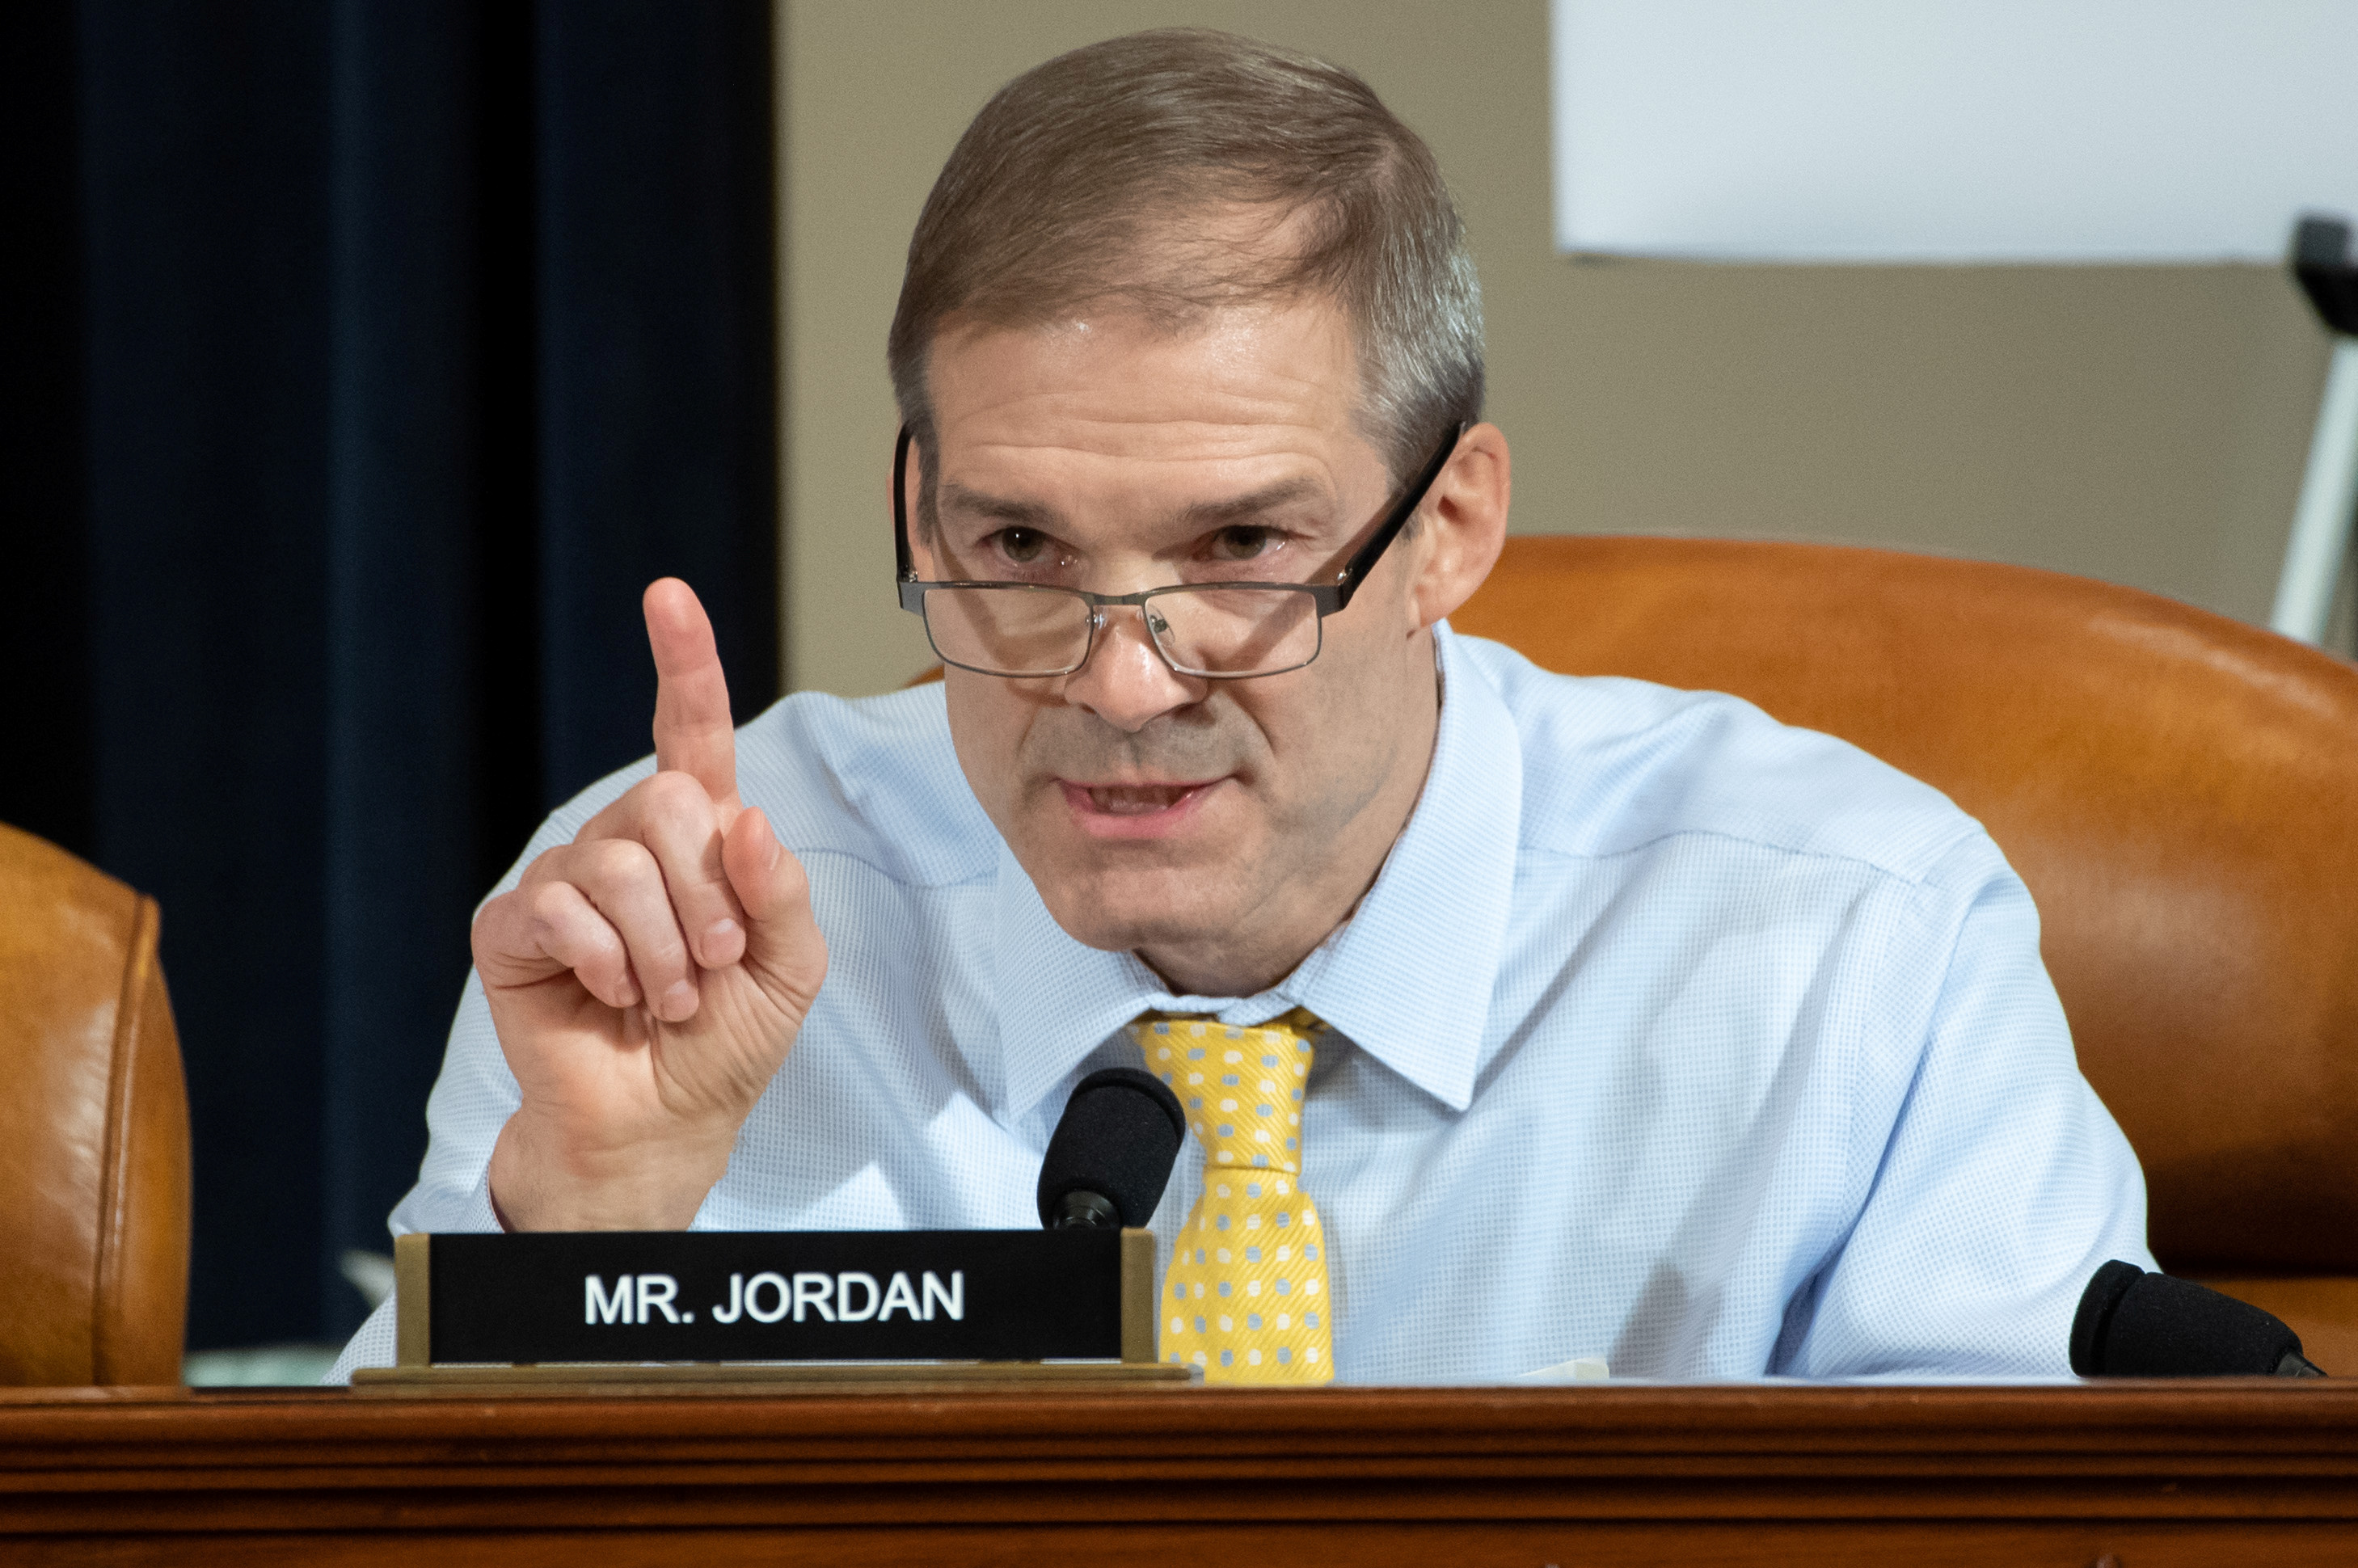 Representative Jim Jordan, Republican of Ohio, asks questions of witnesses U.S. Ambassador to Ukraine William Taylor and Deputy Assistant Secretary George Kent during the first public hearings held by the House Permanent Select Committee on Intelligence as part of the impeachment inquiry into U.S. President Donald Trump, on Capitol Hill in Washington, DC, U.S., November 13, 2019. Saul Loeb/Pool via REUTERS